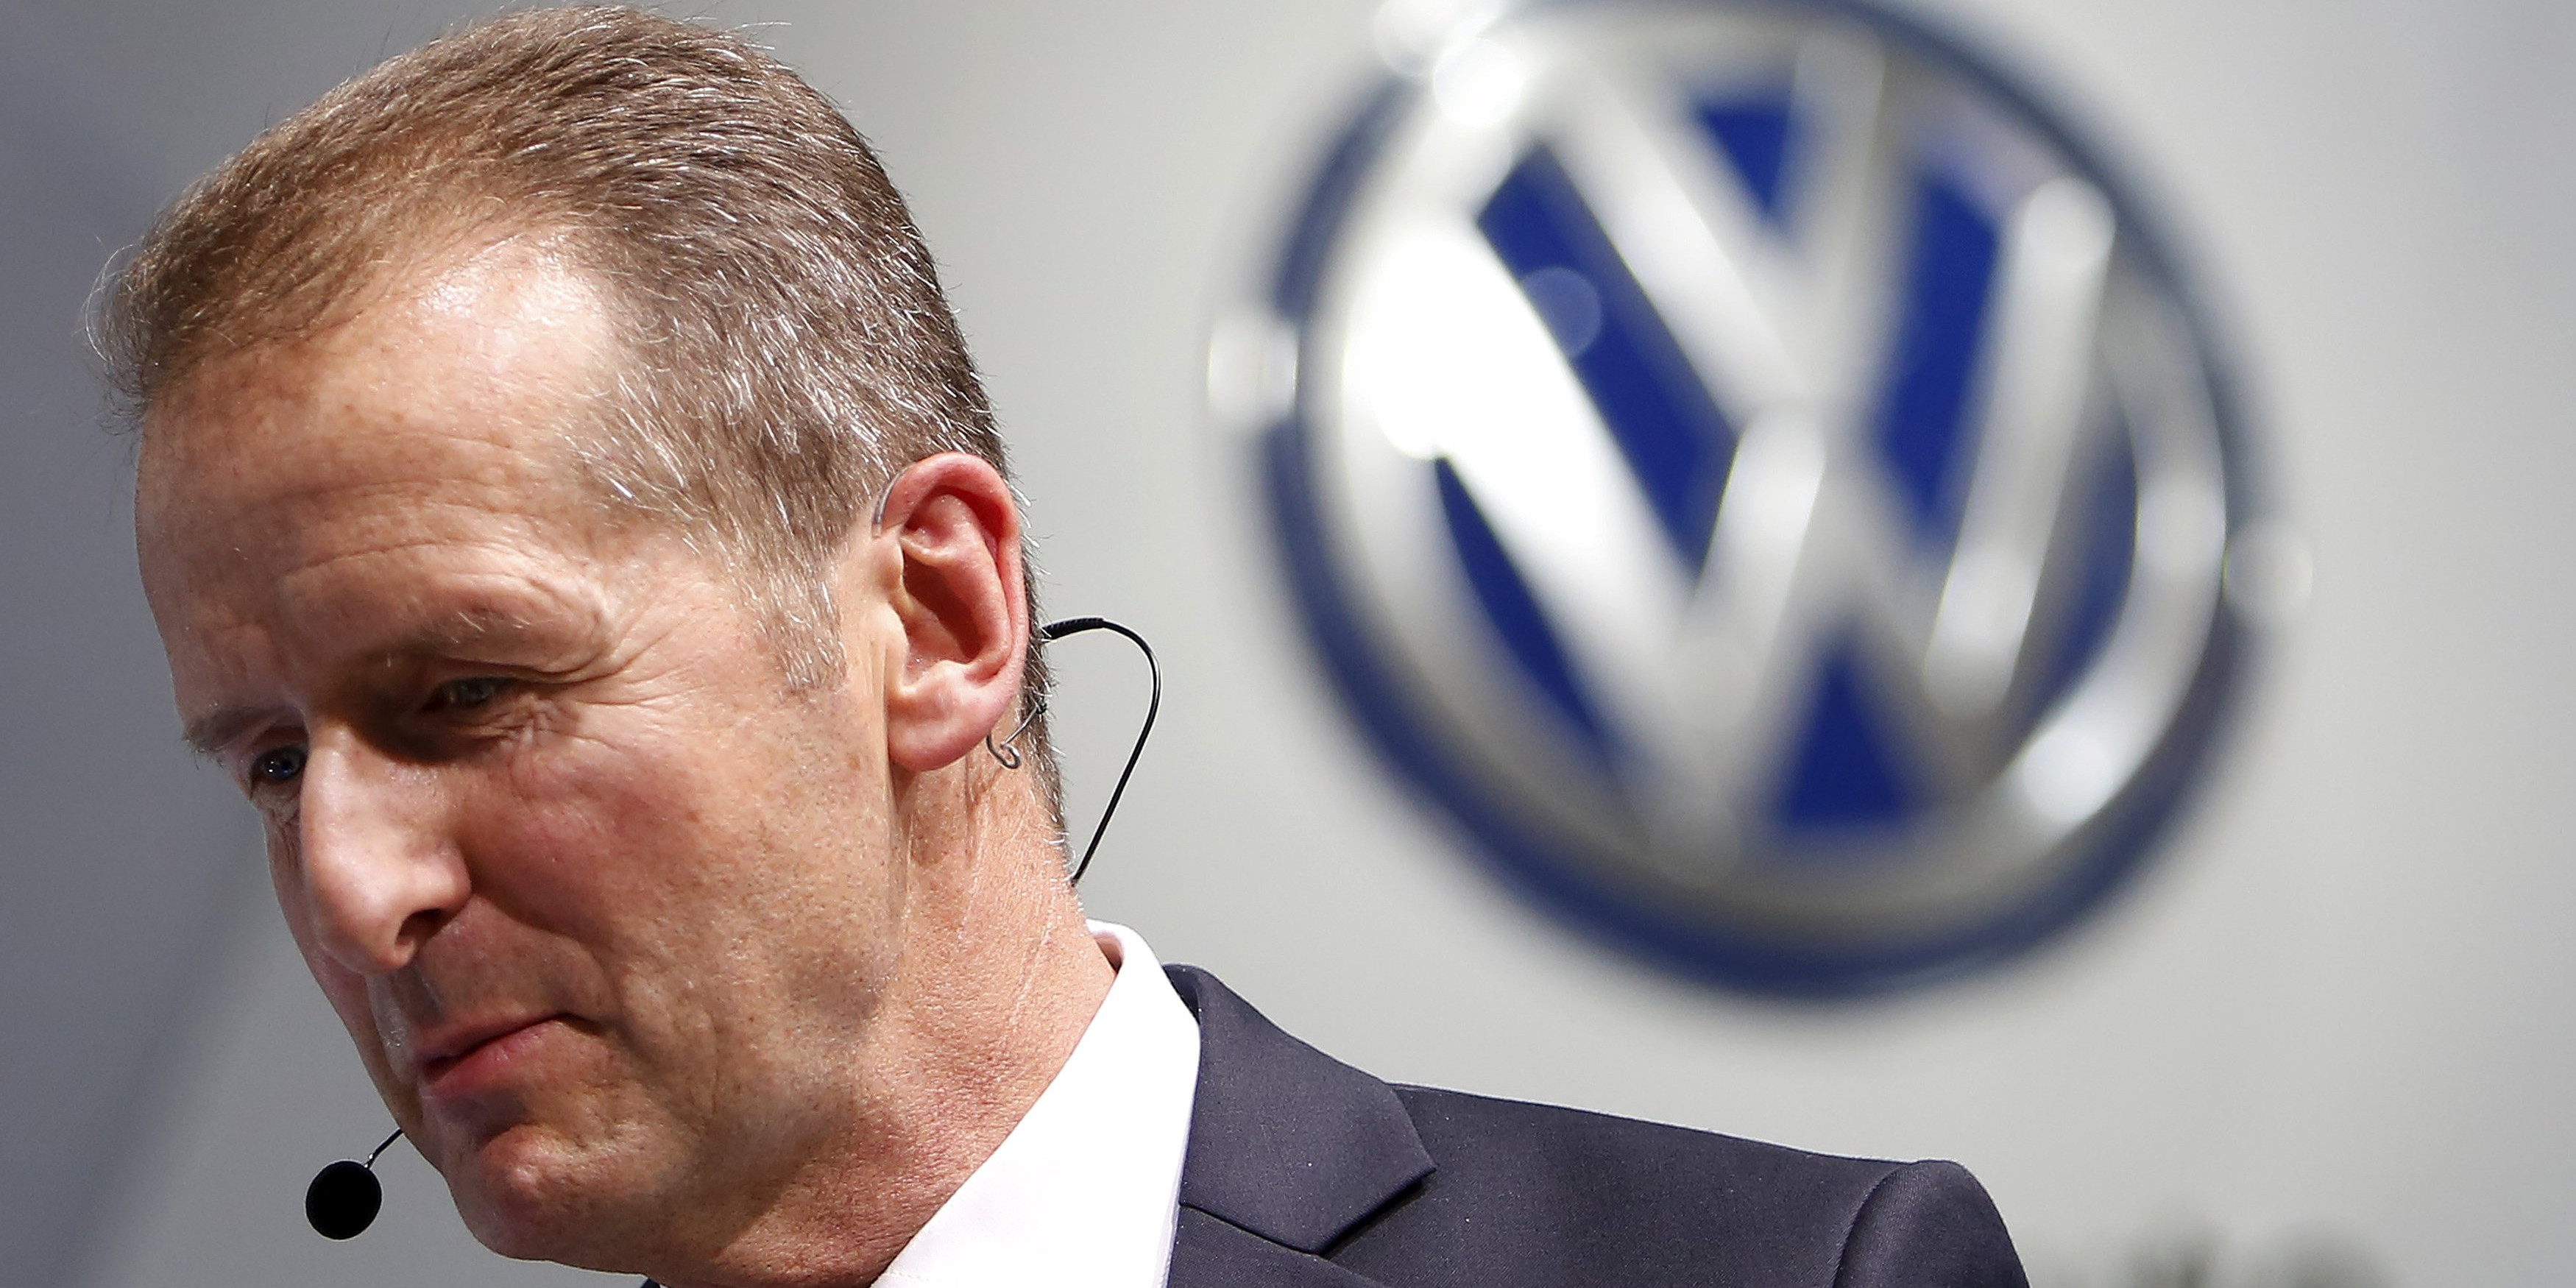 VW to cut 7,000 jobs, drastically increase software development by 2030